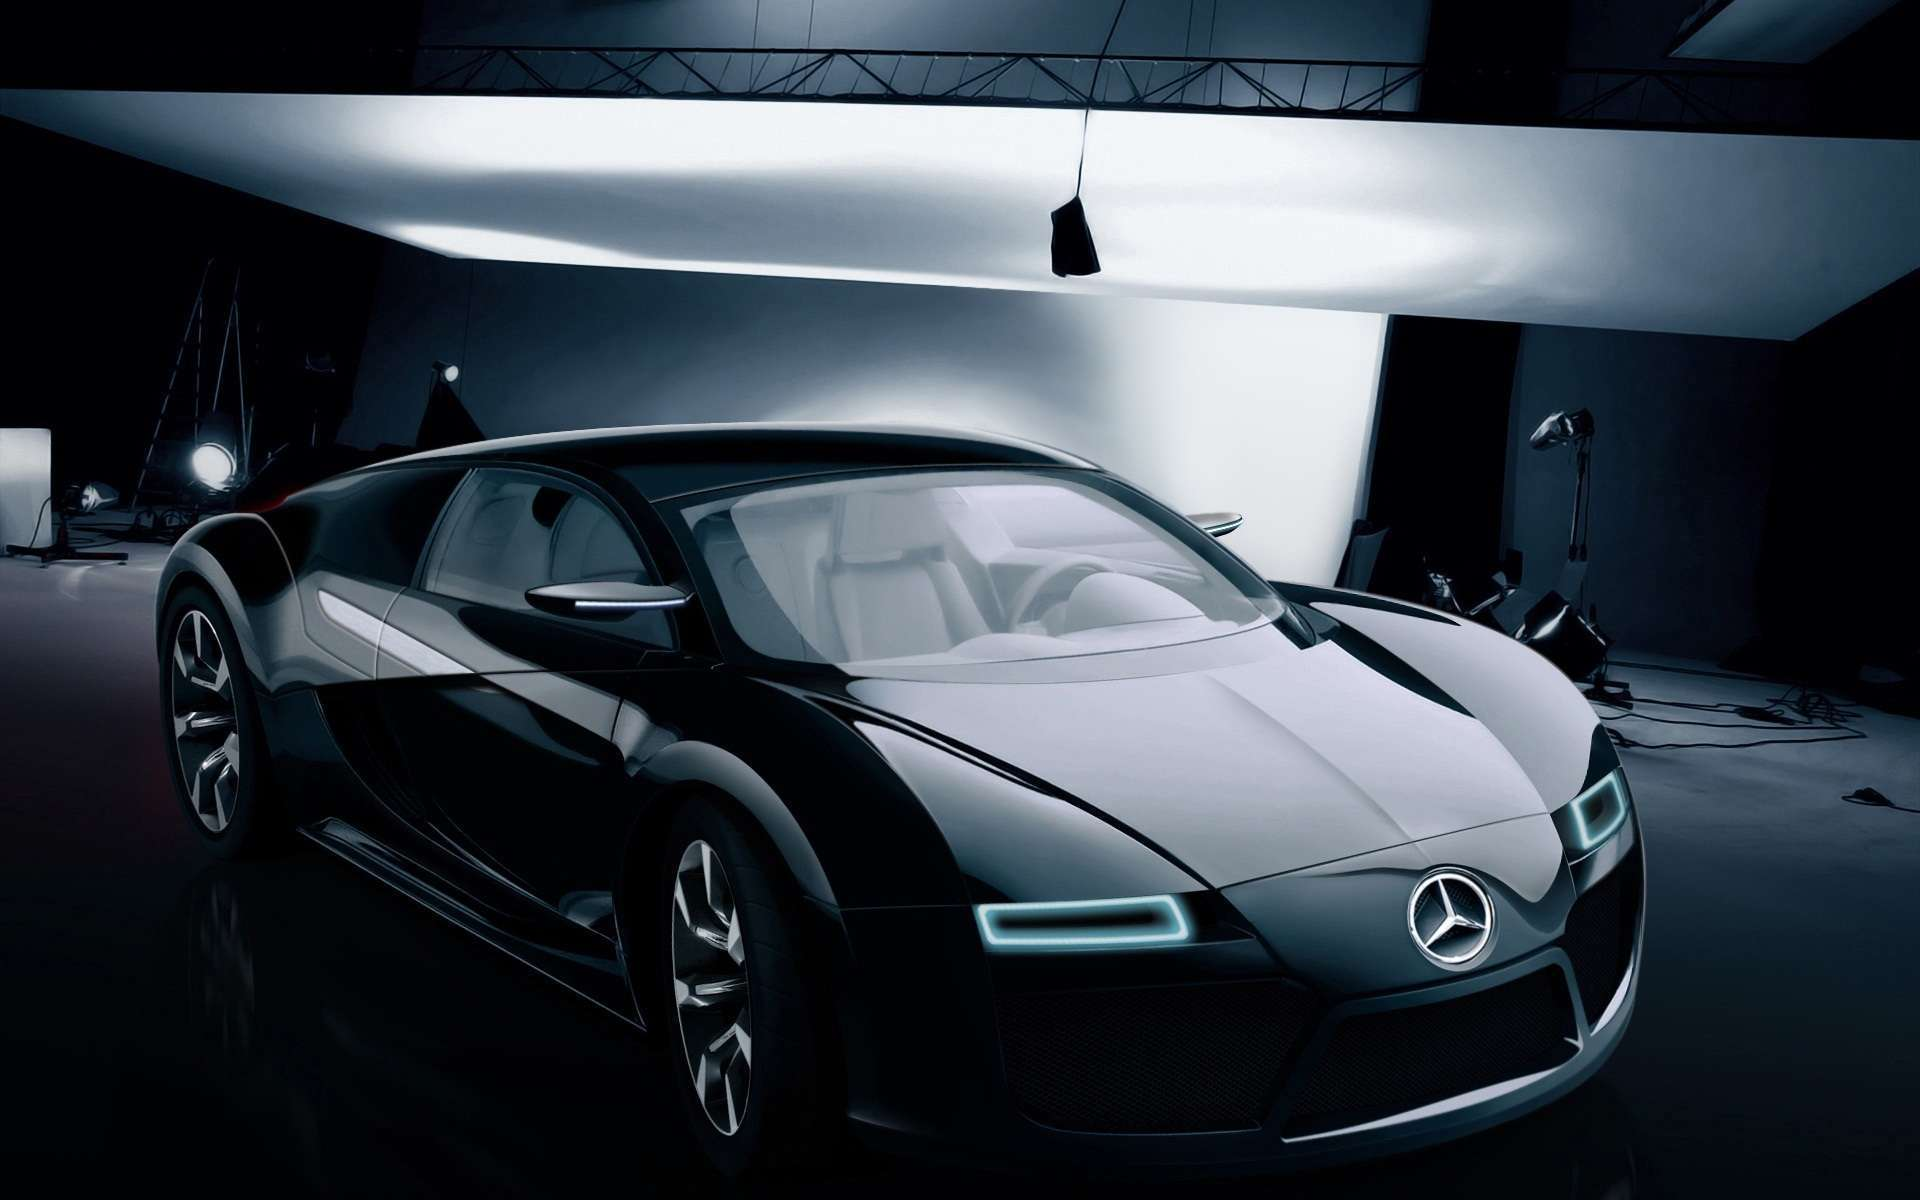 Mercedes Benz Bugatti Concept Hd Wallpapers : Hd Car Wallpapers on